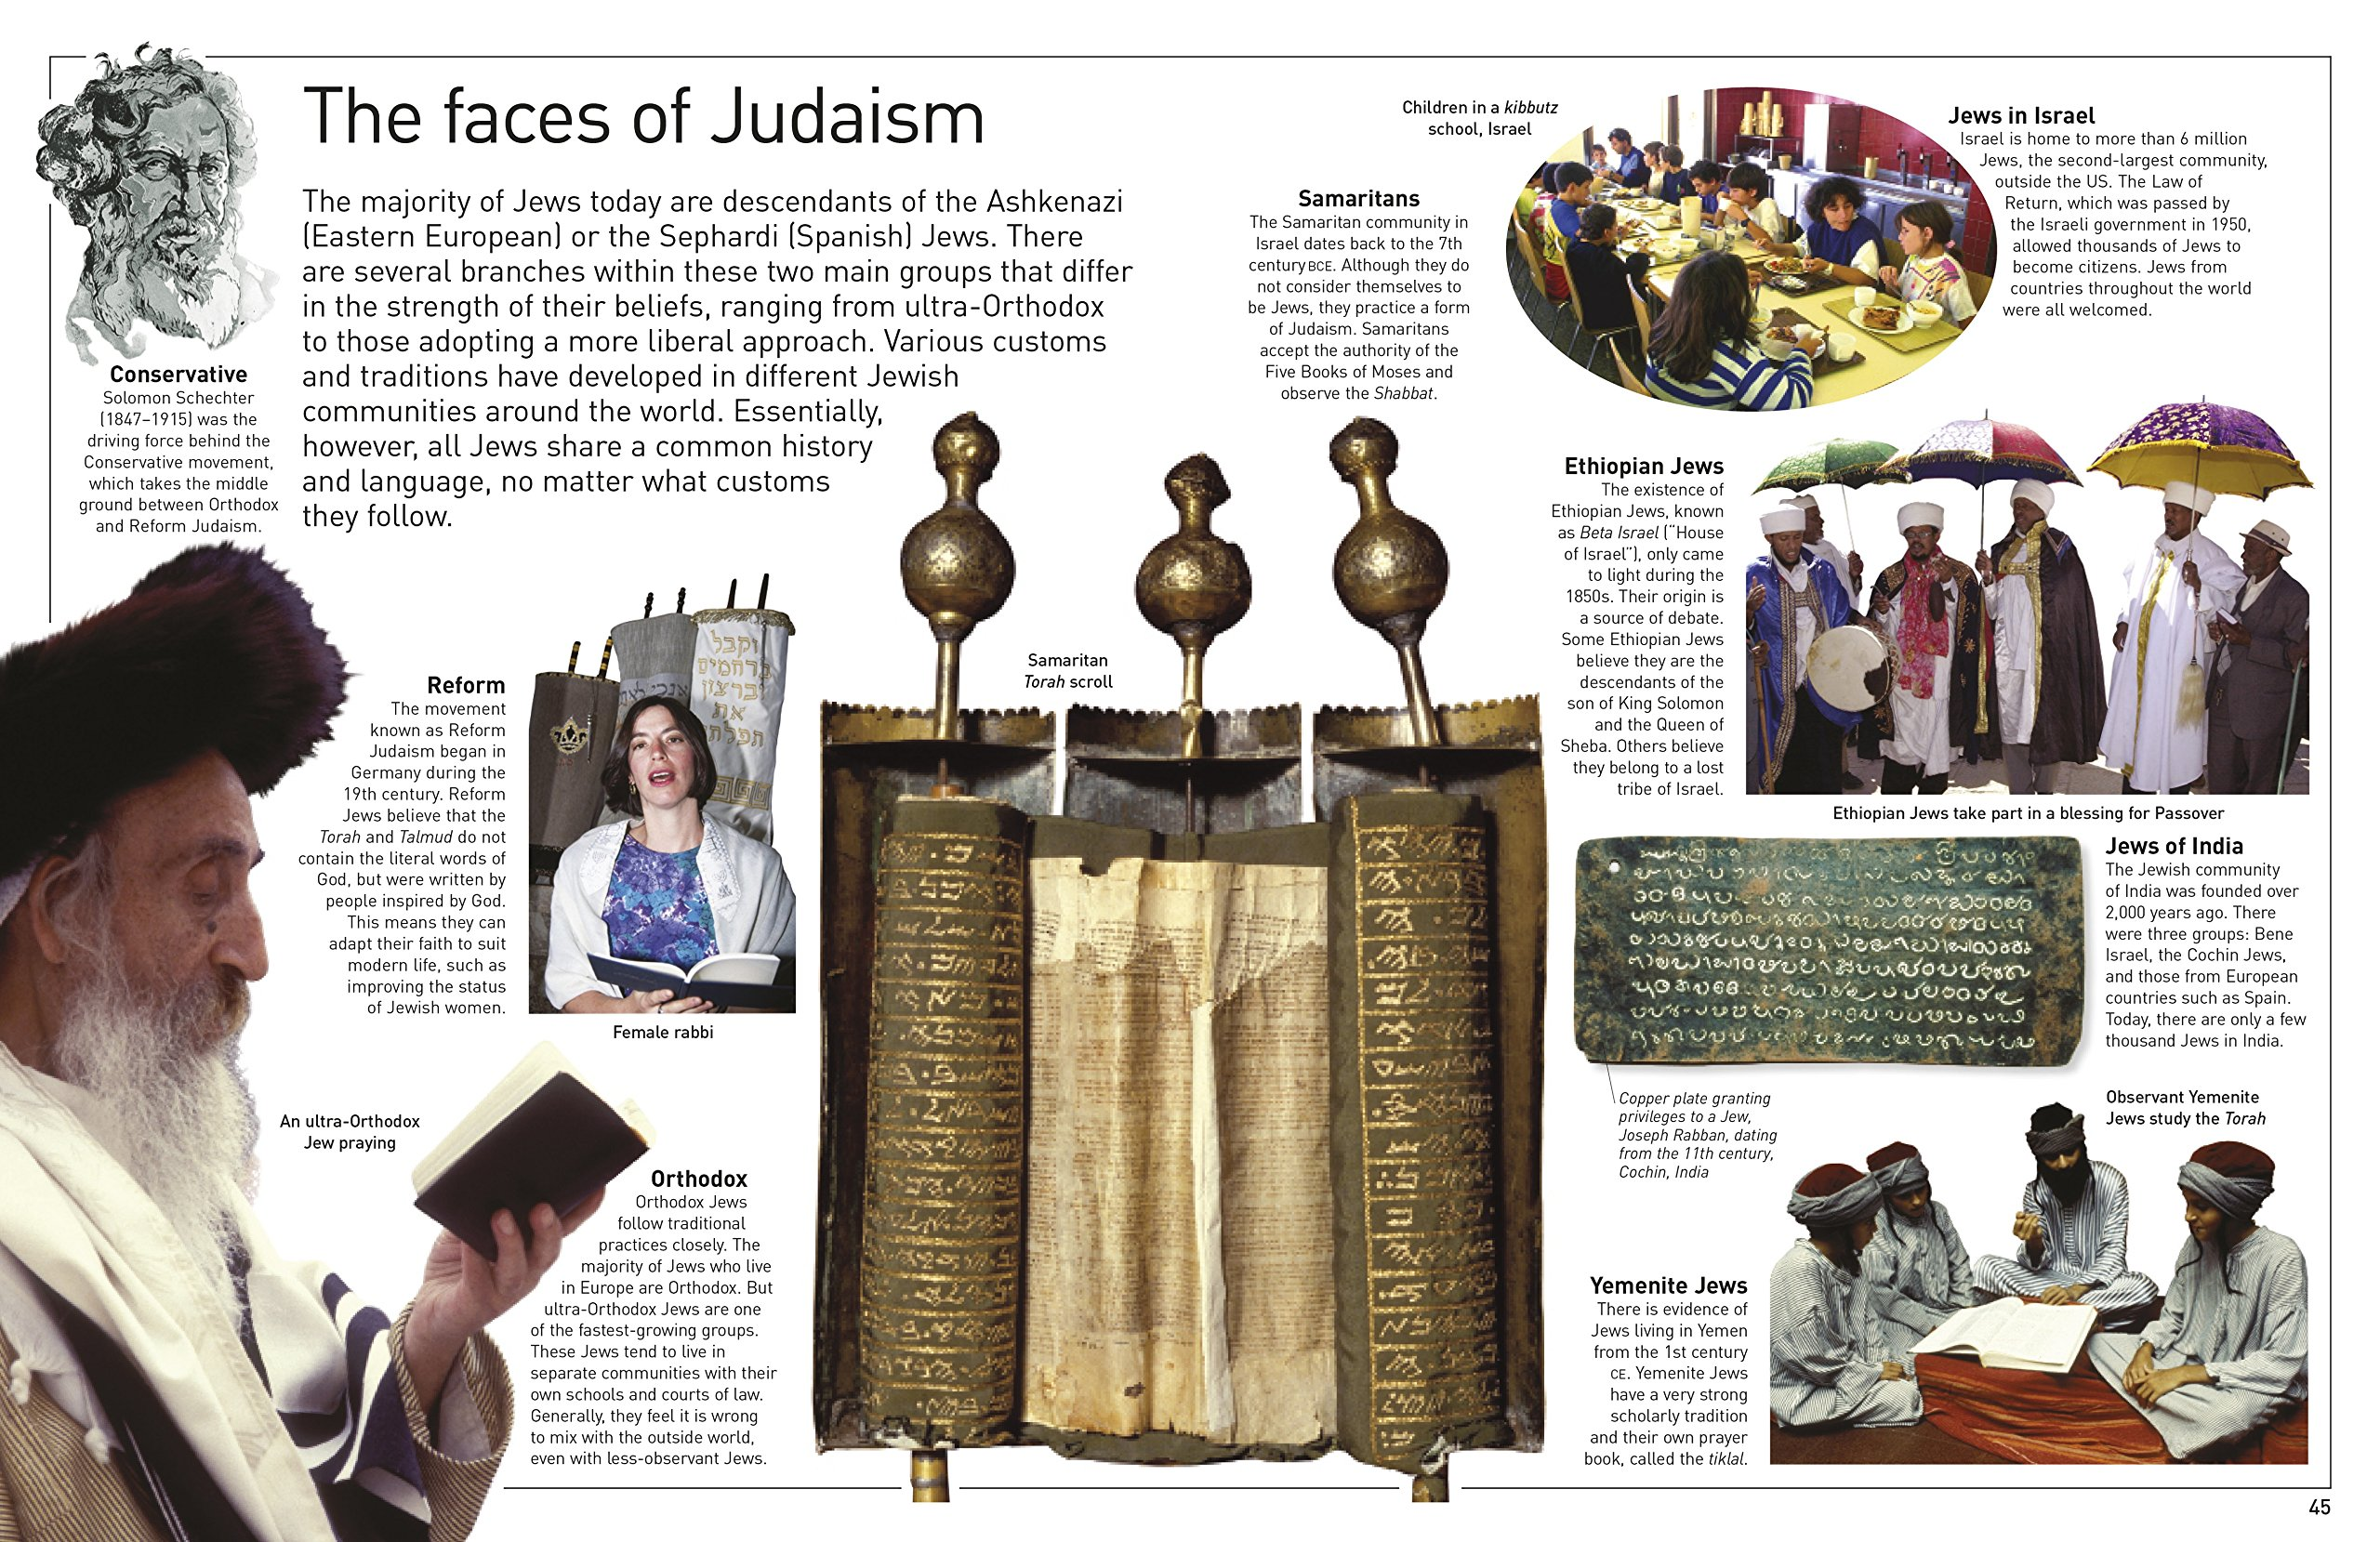 the impact of judaism on the jews and judaism in the 20th century The history of the jews in europe during the 19th and early 20th centuries 79  acceptance depended on the impact anti-  eenth century when haskala, the jewish enlightenment, originated.